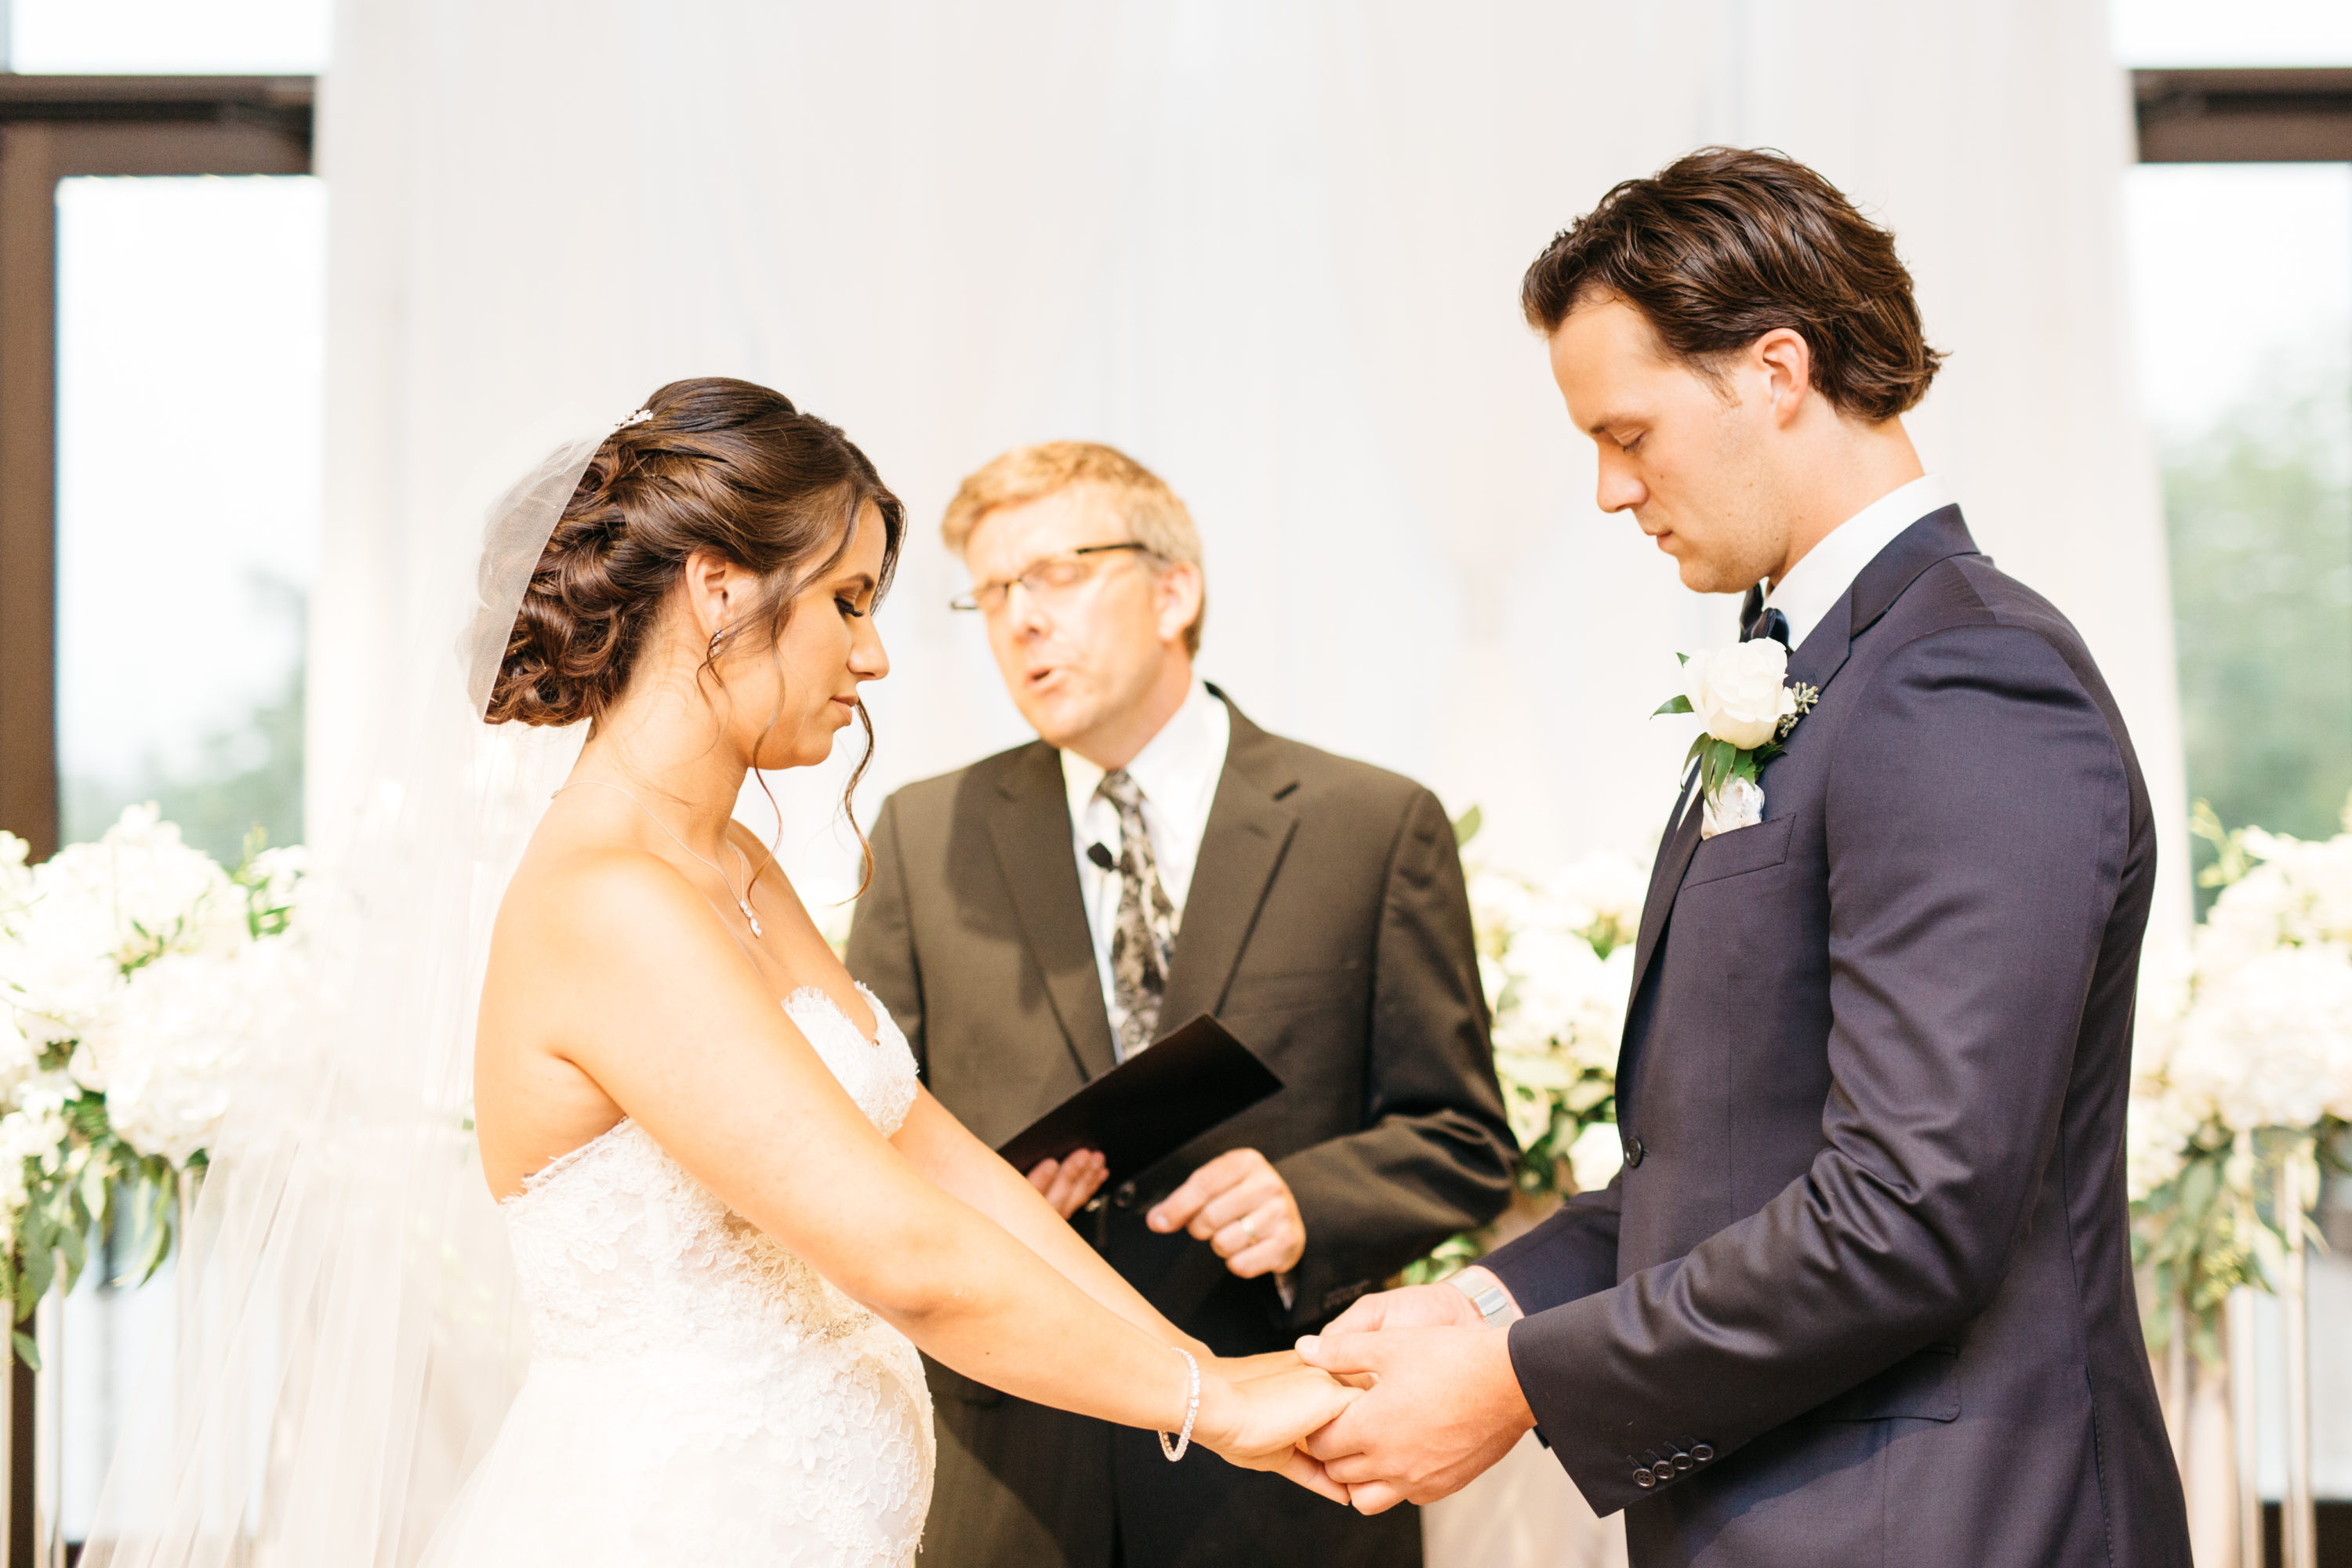 Bride and groom holding hands during their ceremony